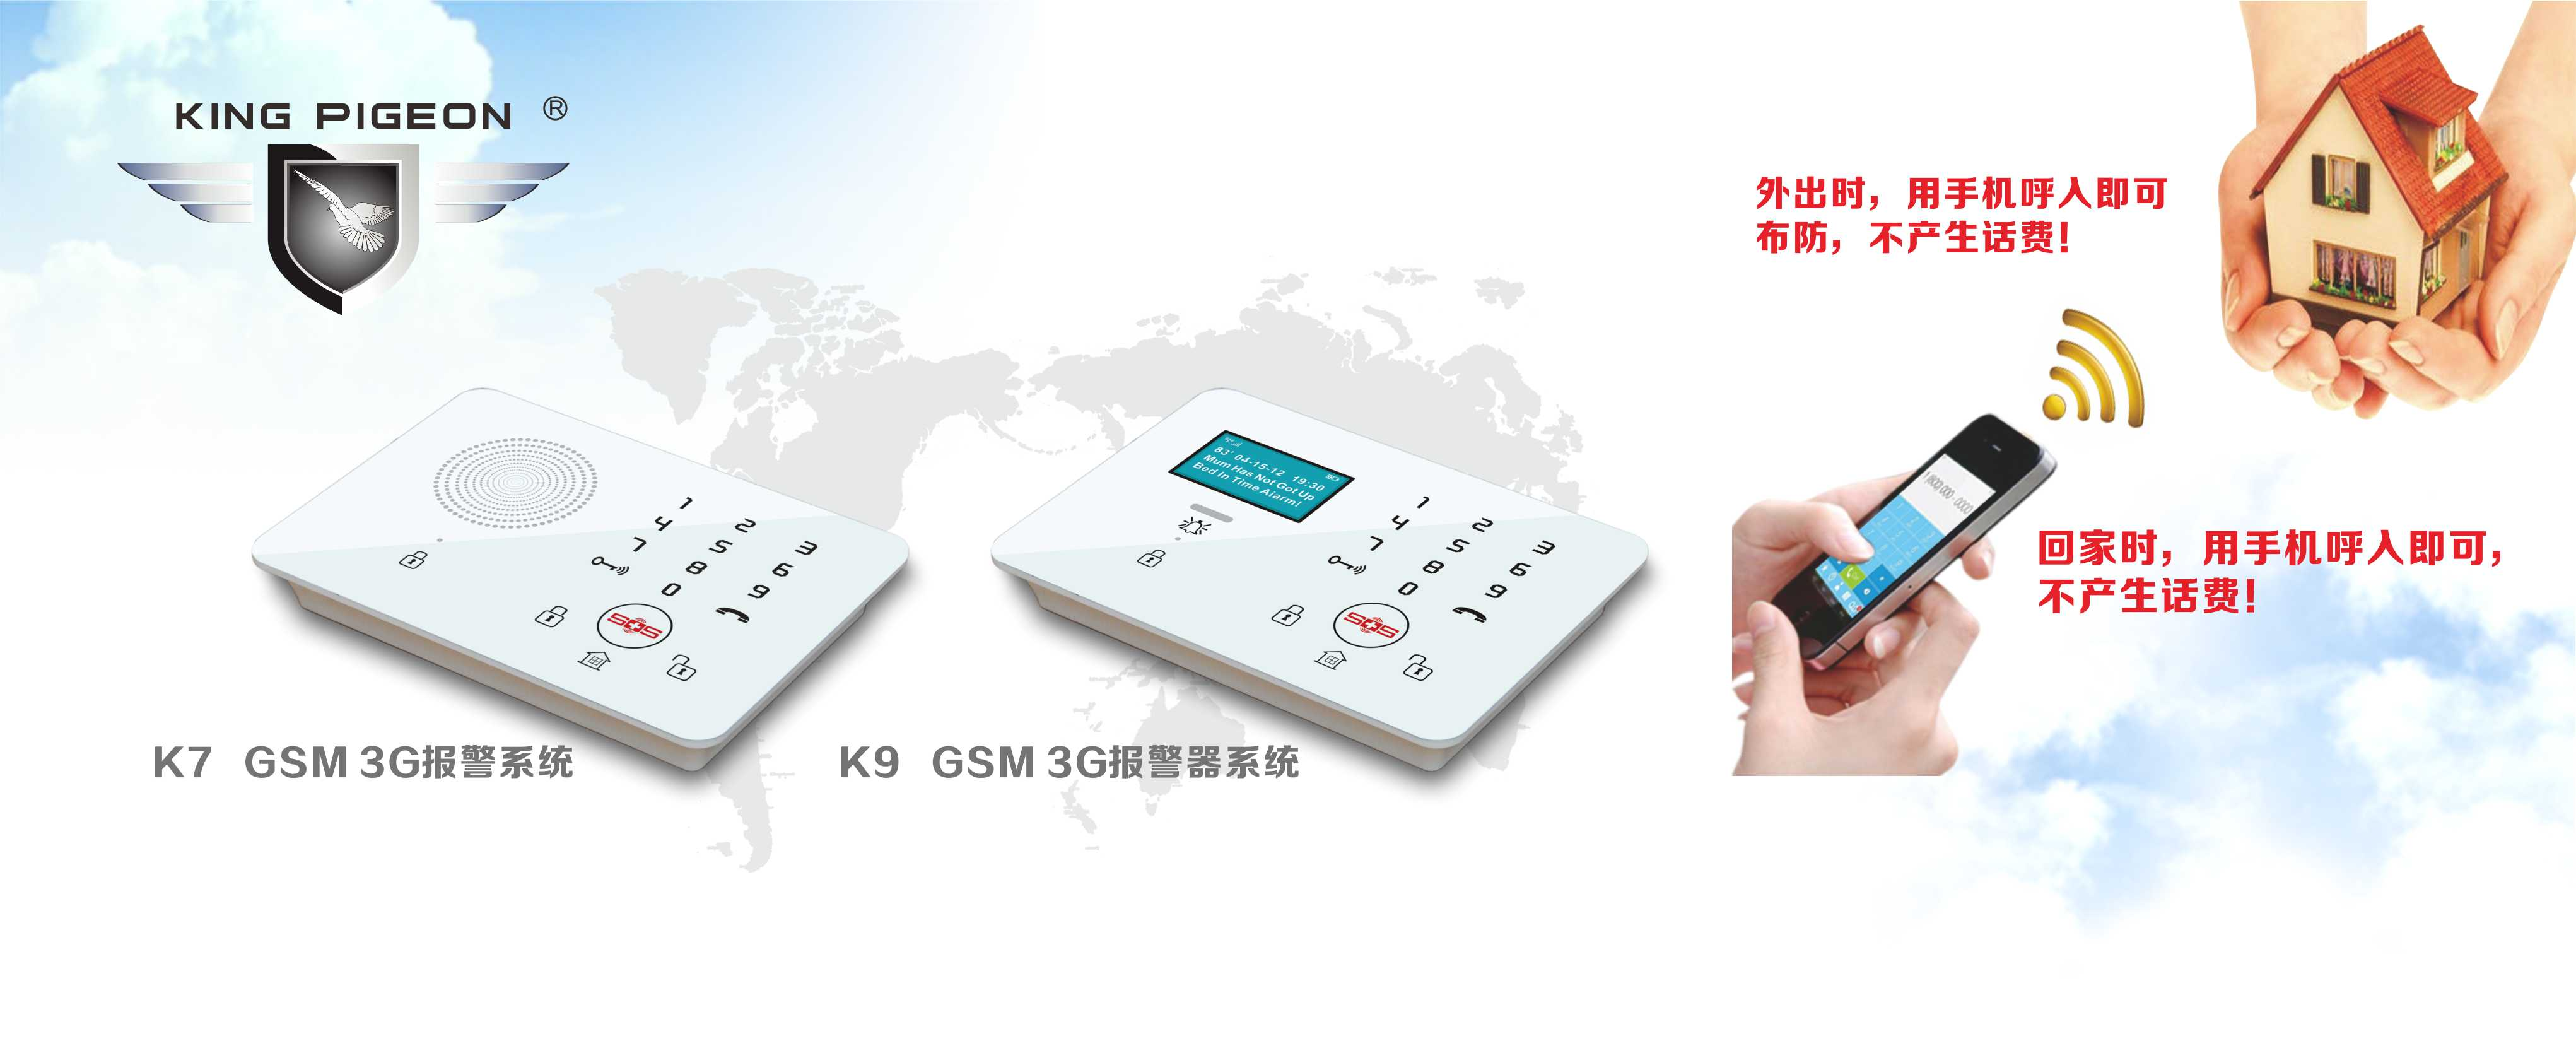 King Pigeon GSM 3G Telecare Co.,Ltd. Main Image